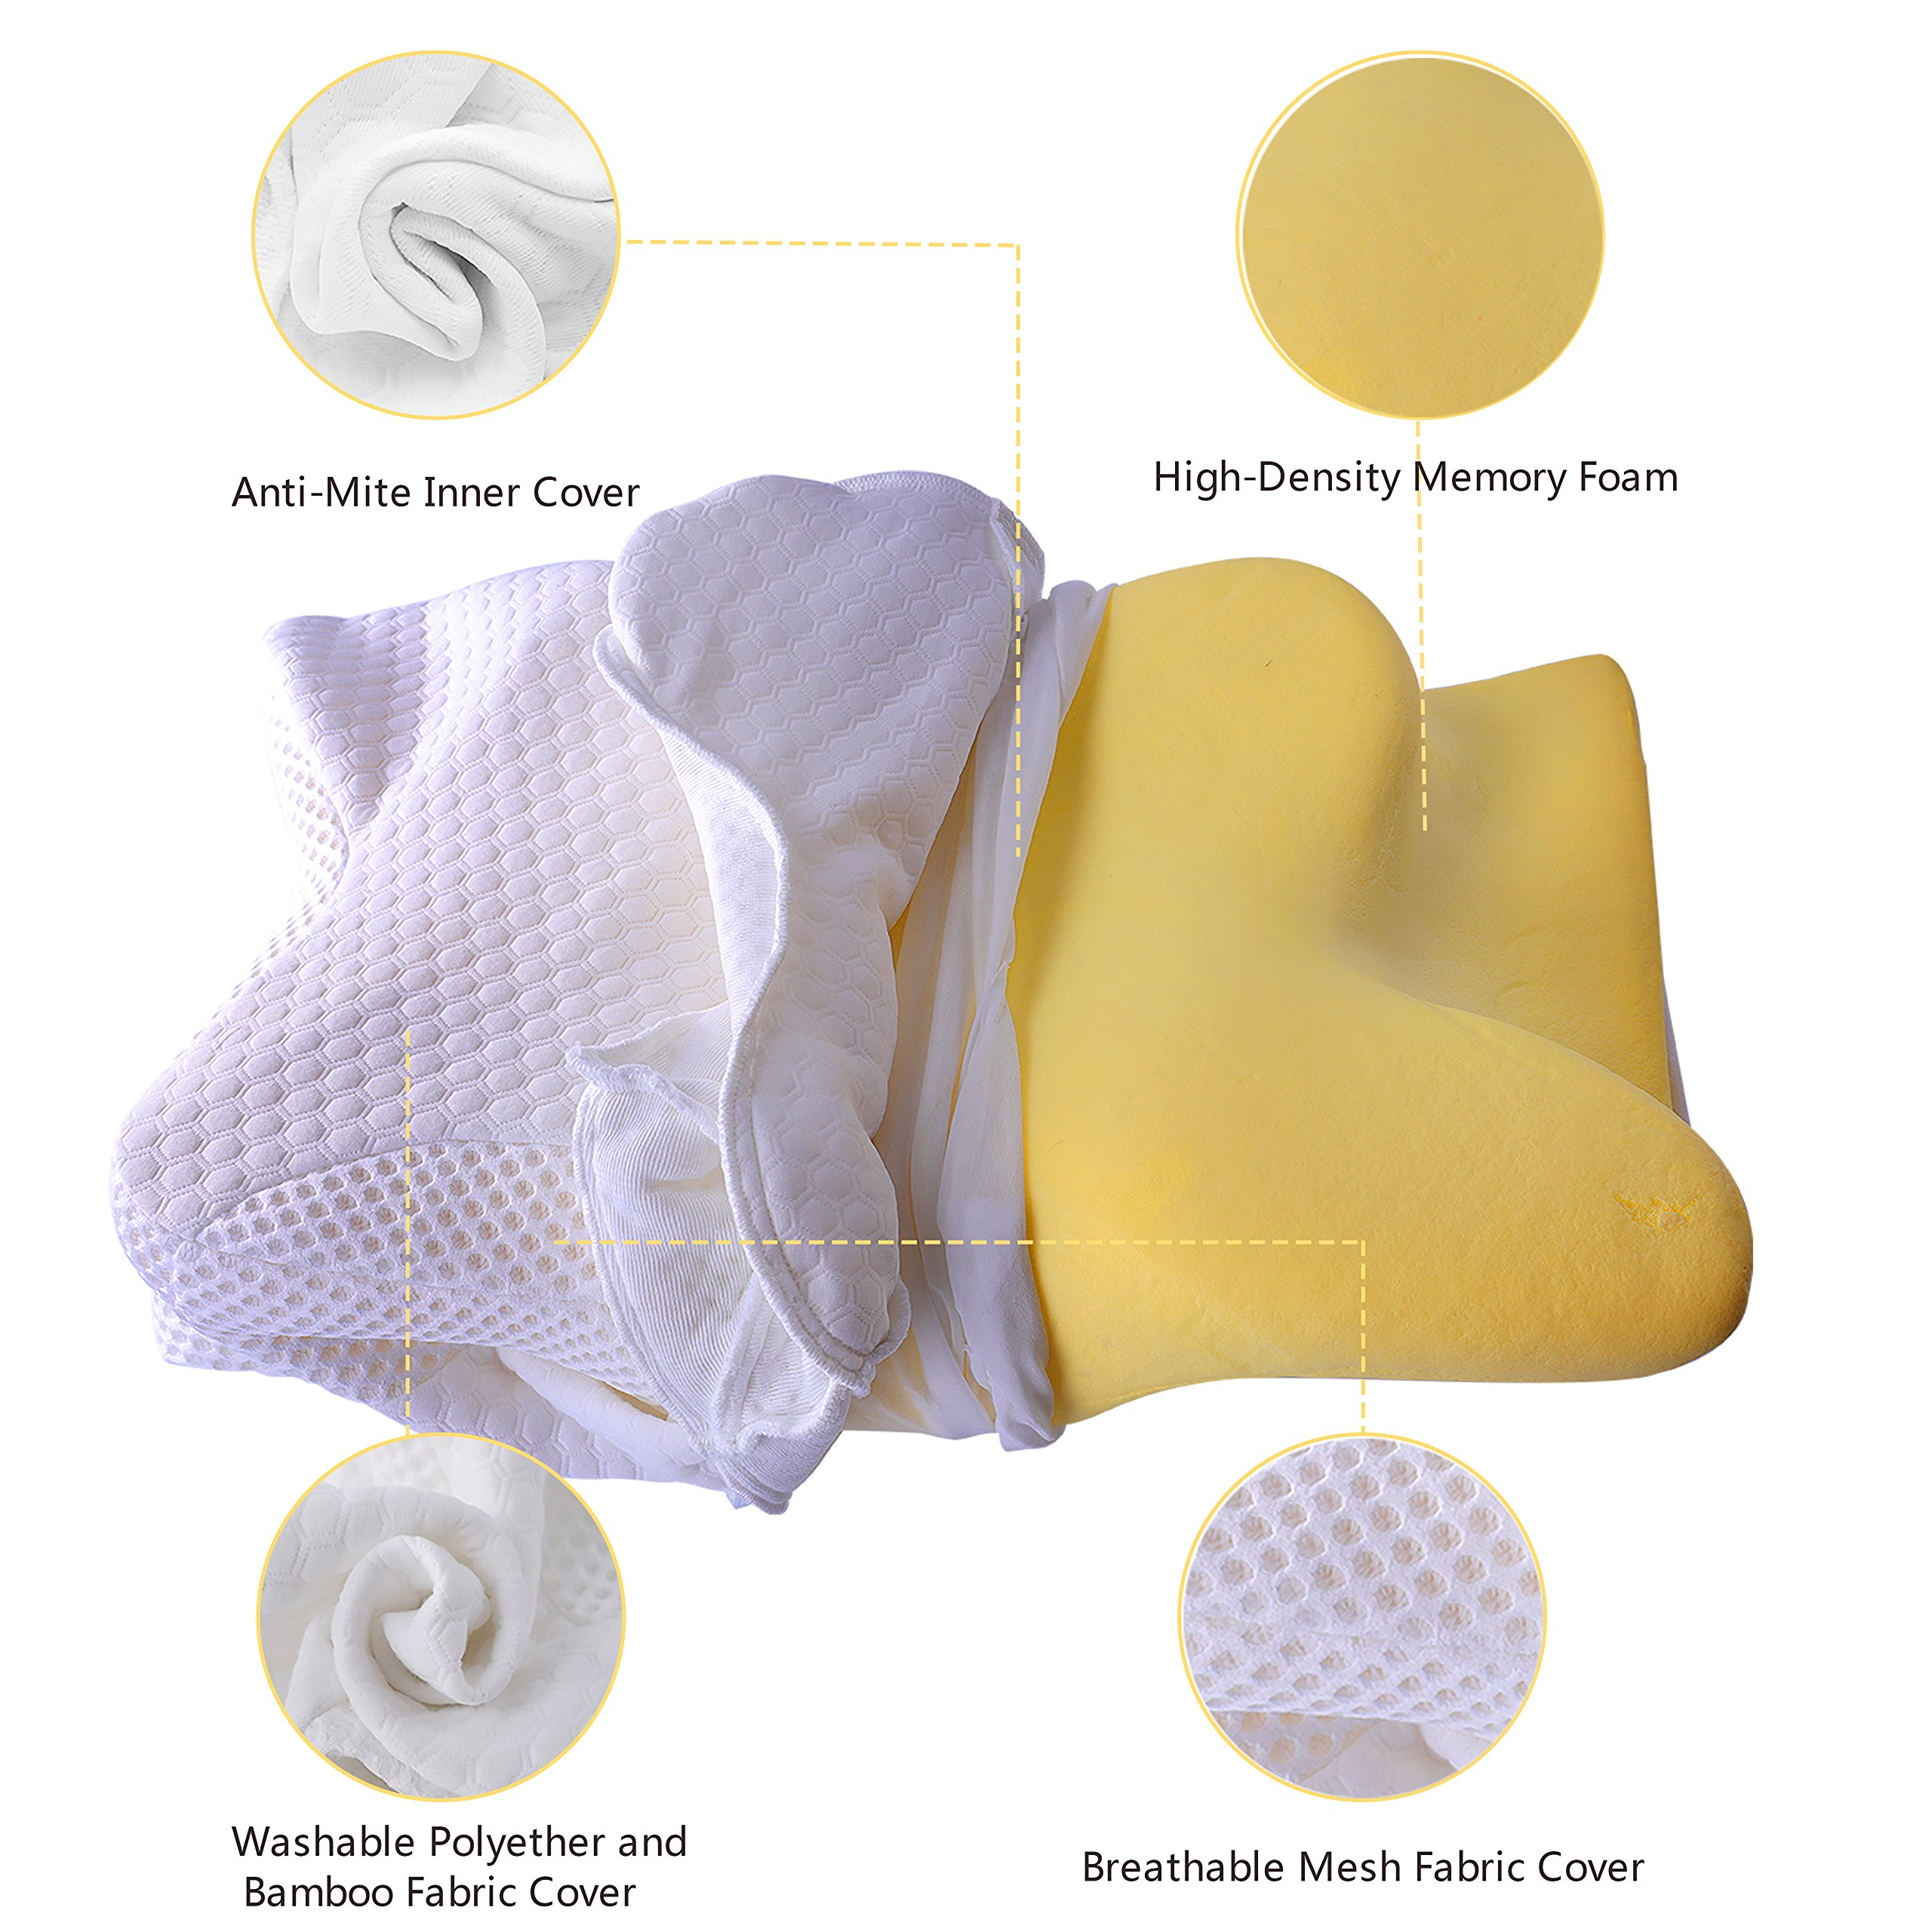 therapeutic foam contour bed memory pdx wayfair innovations reviews sleep pillow pillows bath